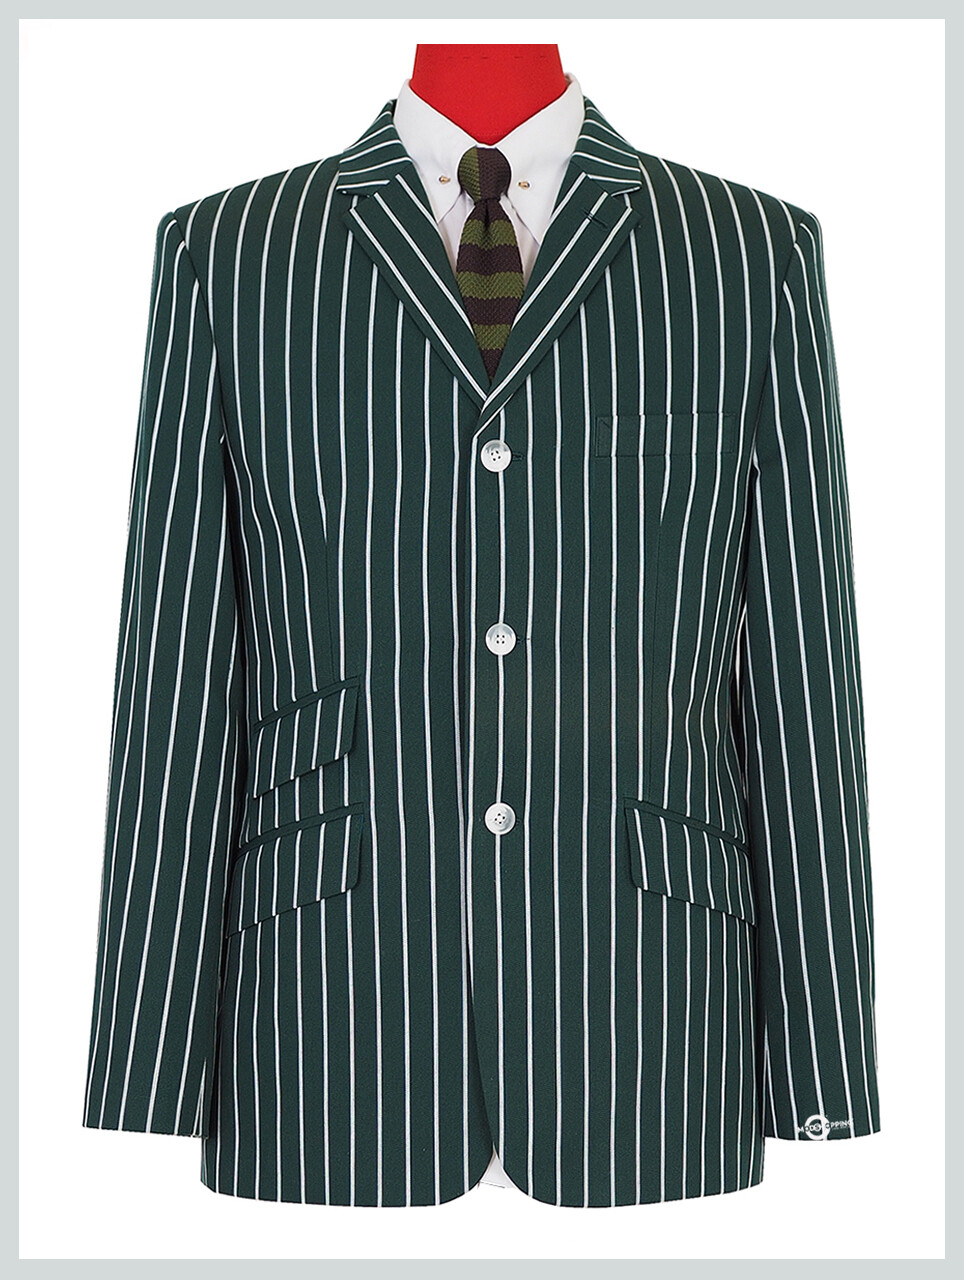 60s Mod Fashion Tailored 3 Button  Casual Olive Green Striped Blazer Jacket